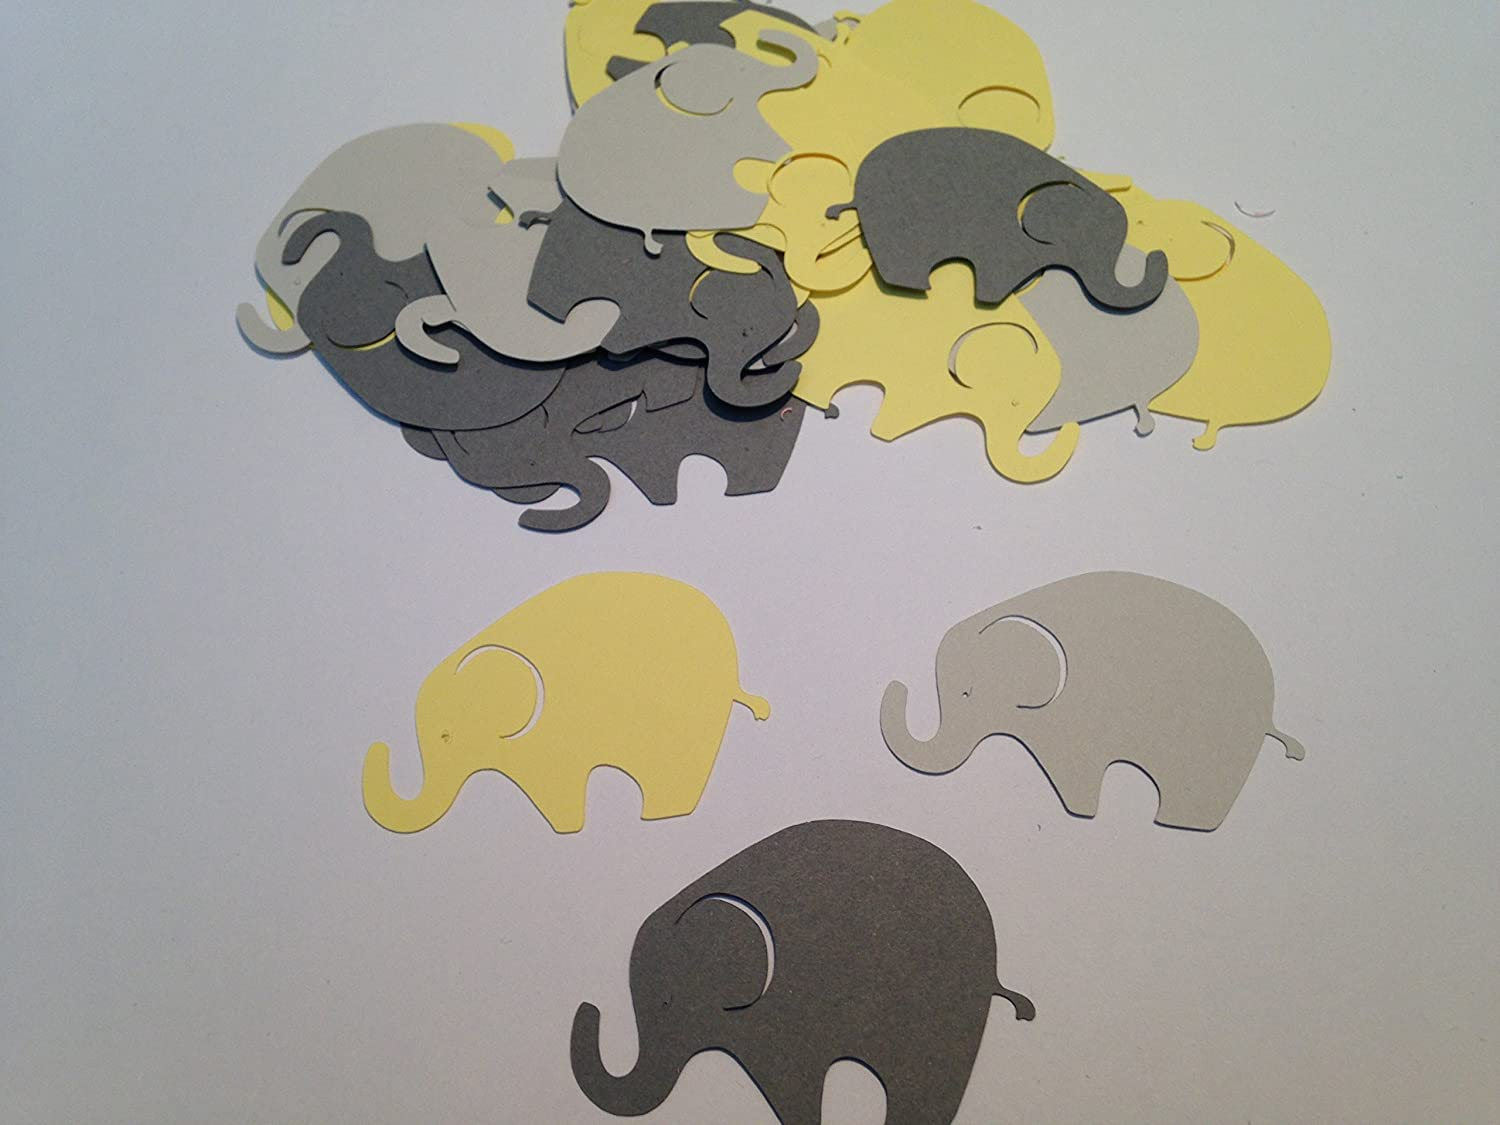 50 Large Yellow Gray Elephant Cutout 2 Inch Elephant Die Cut Embellishment Cupcake Topper Supplies